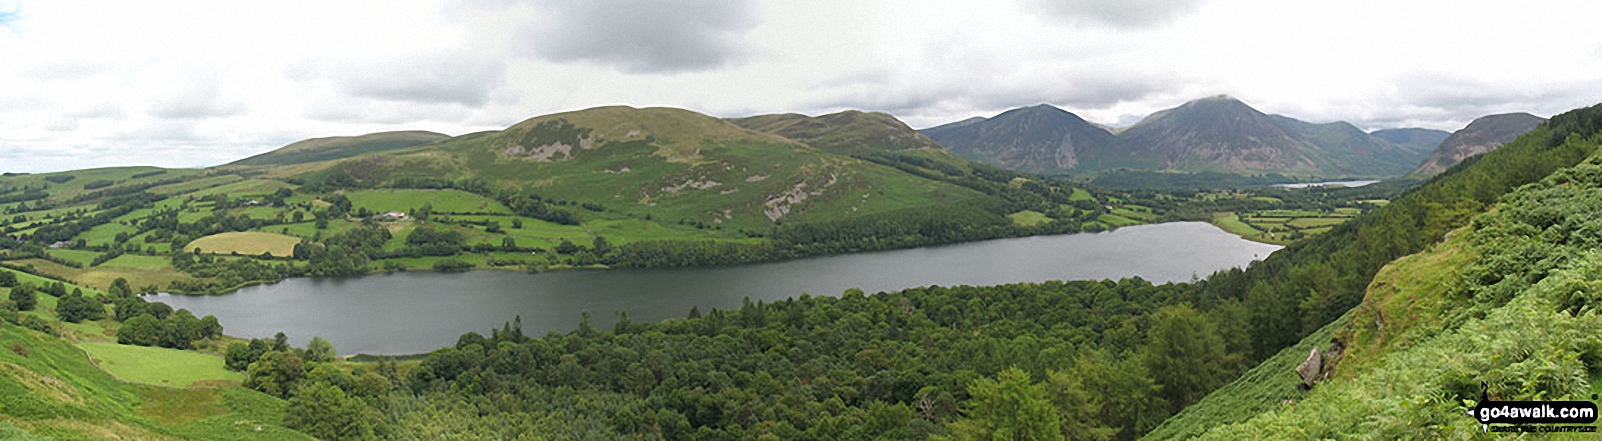 Loweswater photographed from the terrace path above Holme Wood